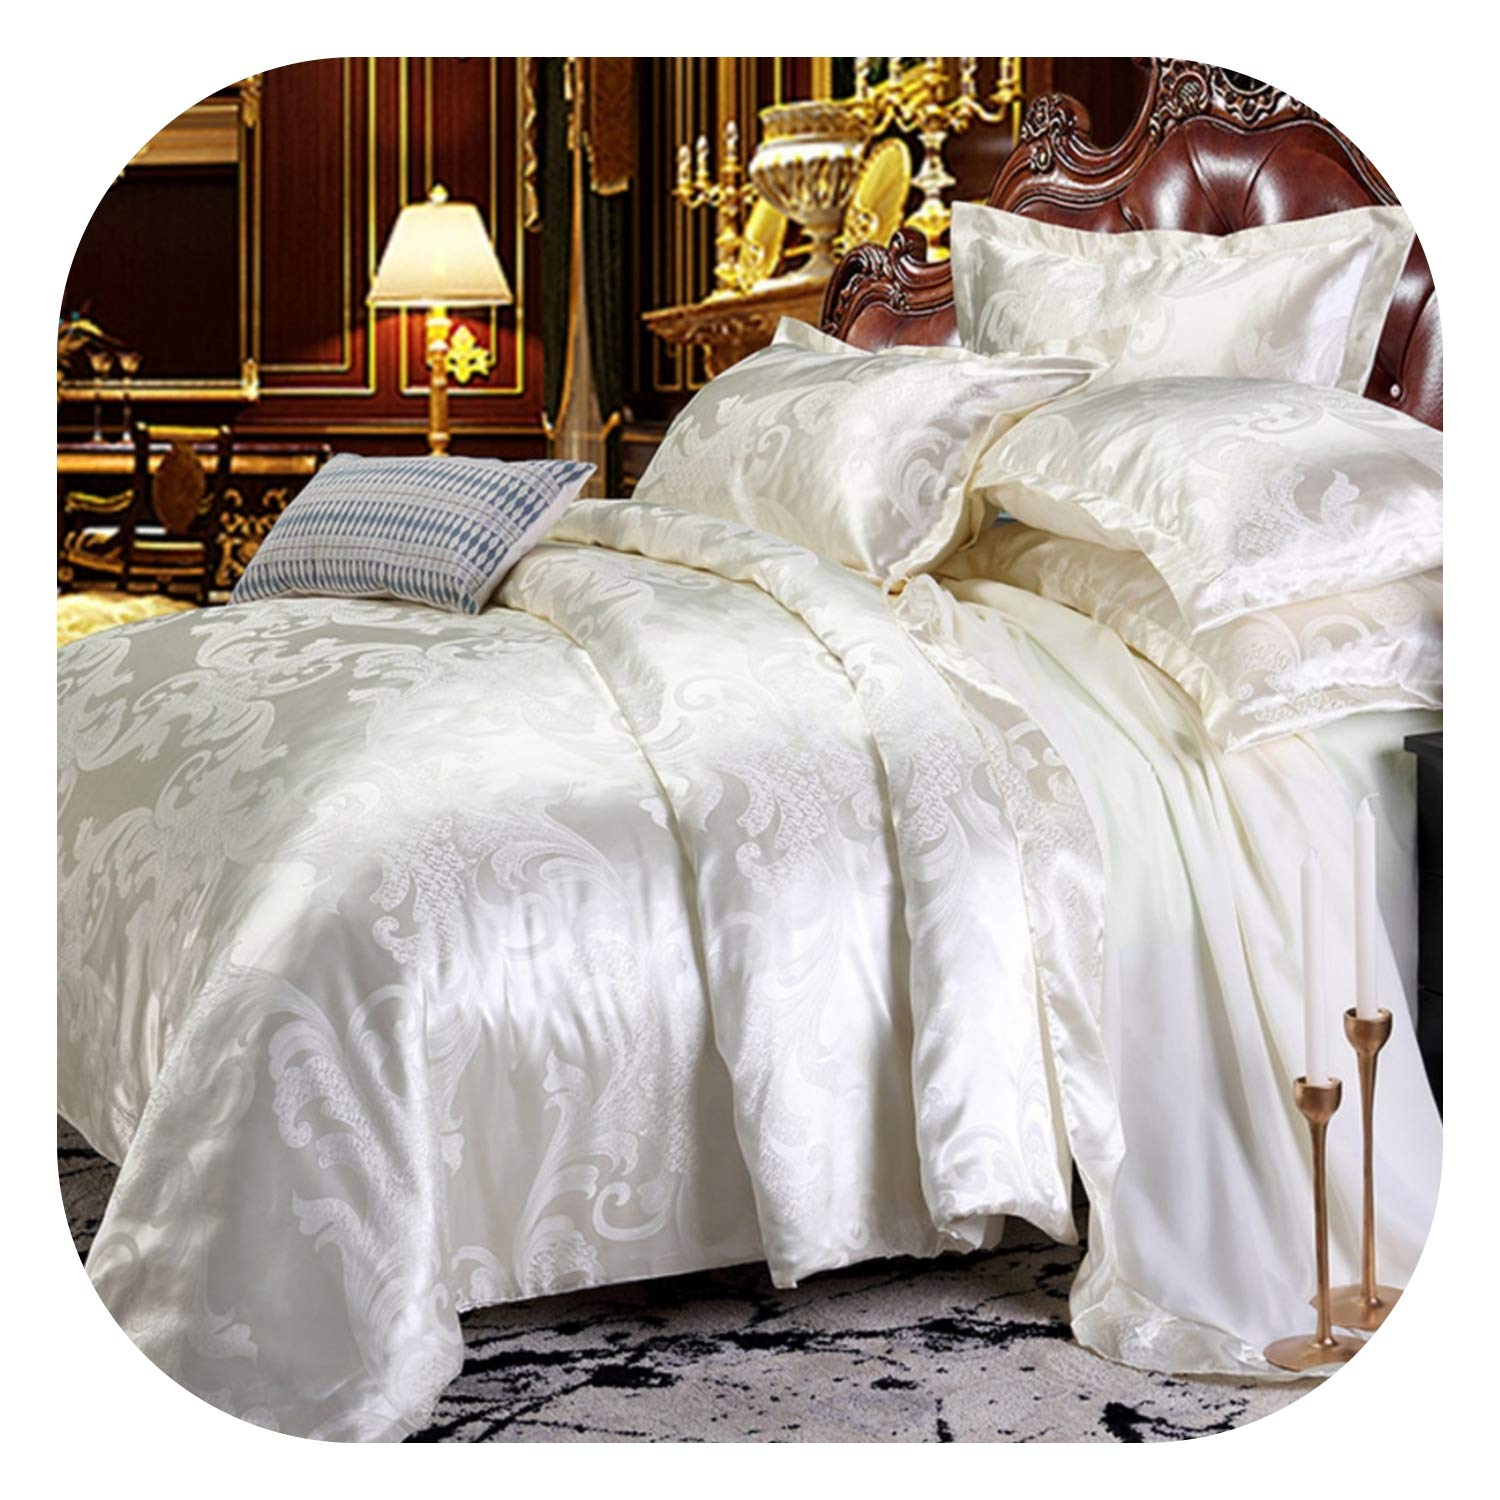 2019 NEW Jacquard Bedlinen Queen King Size Duvet cover Set Imitation Silk Cotton Bedding Sets Luxury Gold Colour2//3//4pcs,AJF05,AU Queen4pcs